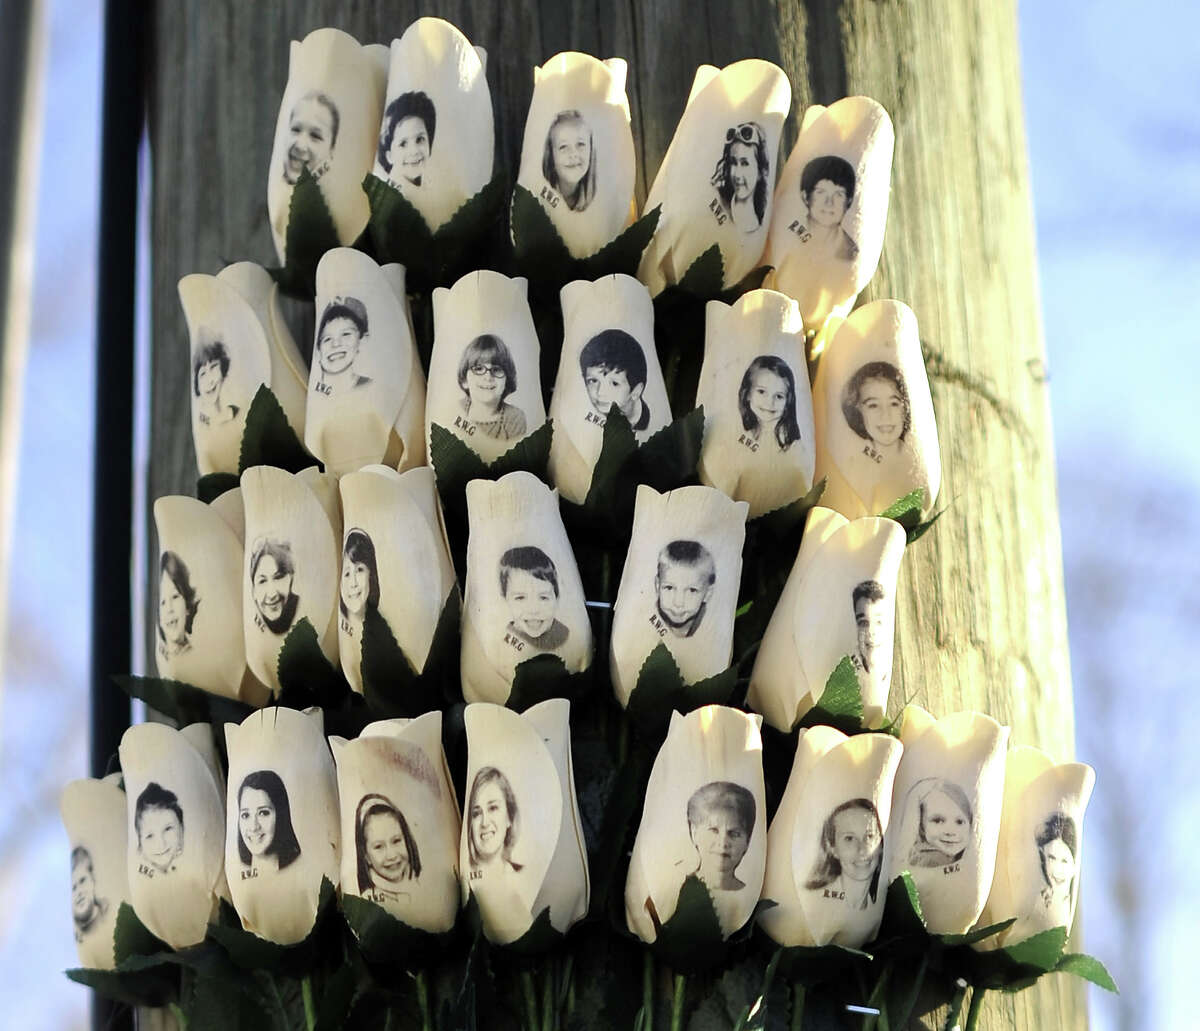 Roses with the faces of the Sandy Hook Elementary students and adults killed are seen on a pole in Newtown, Connecticut on January 3, 2013.